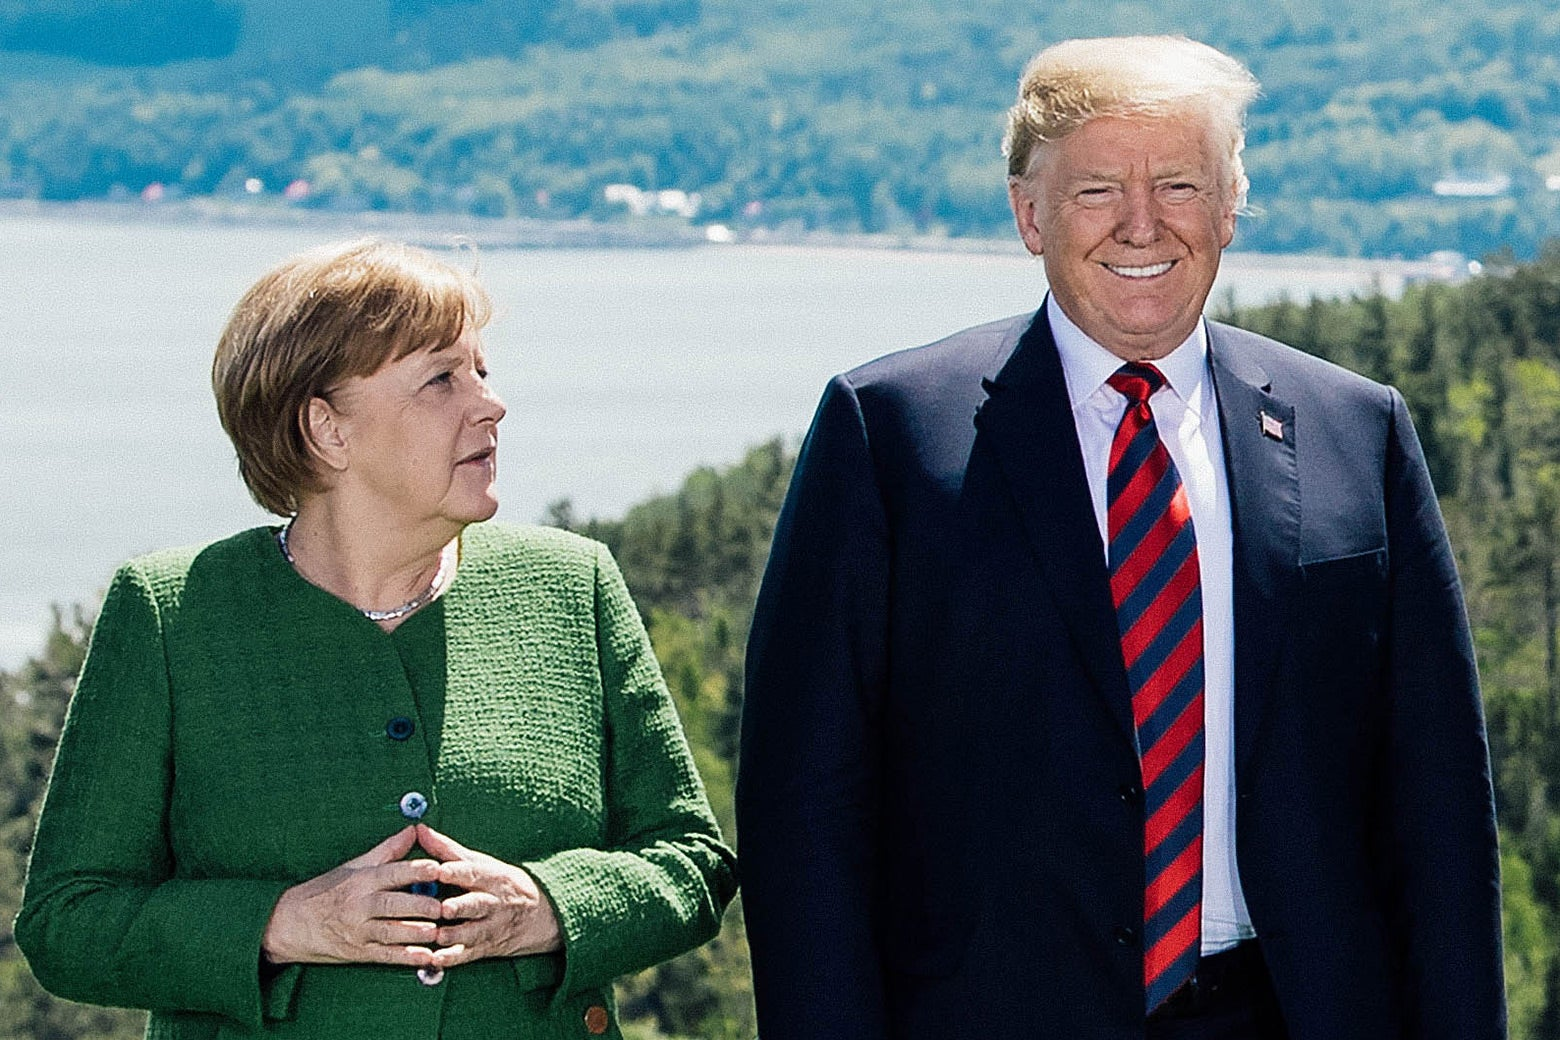 Angela Merkel looks at Donald Trump as he stares ahead smiling.